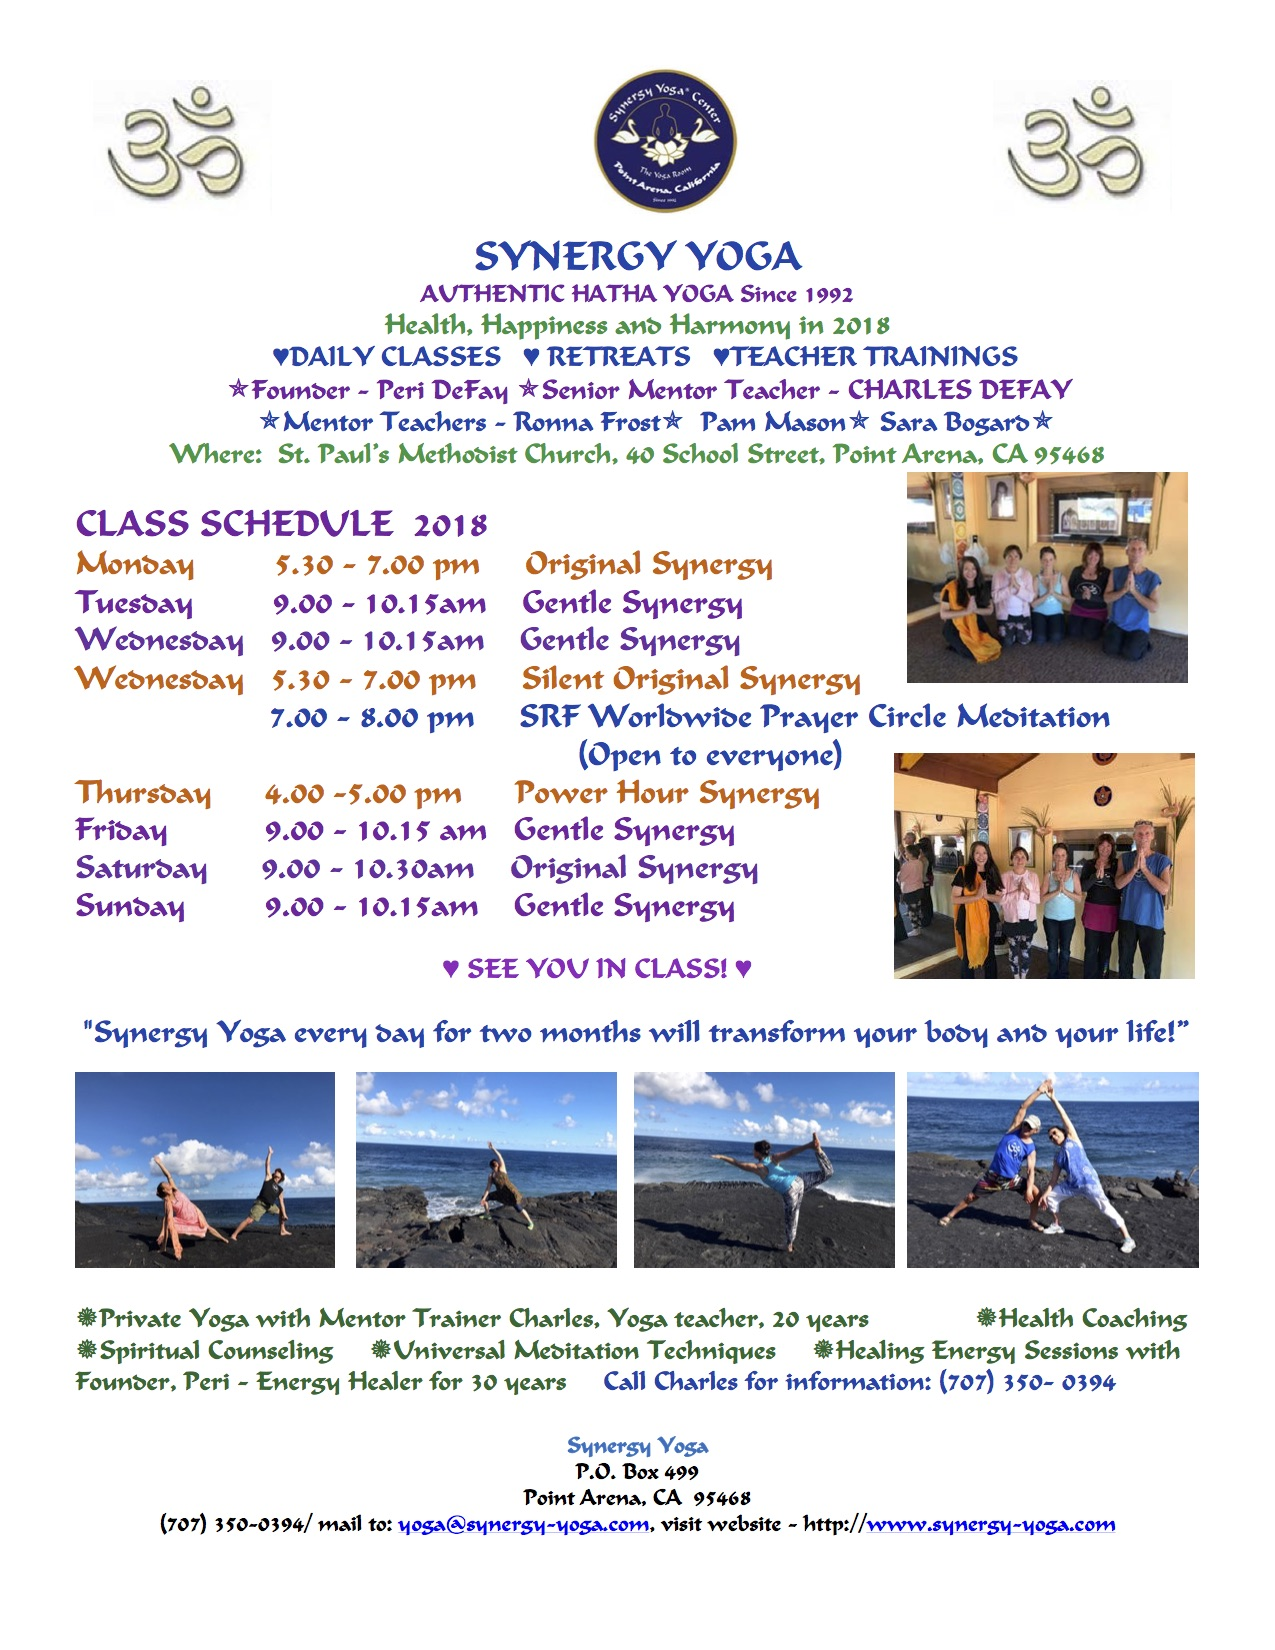 download a printable synergy yoga schedule